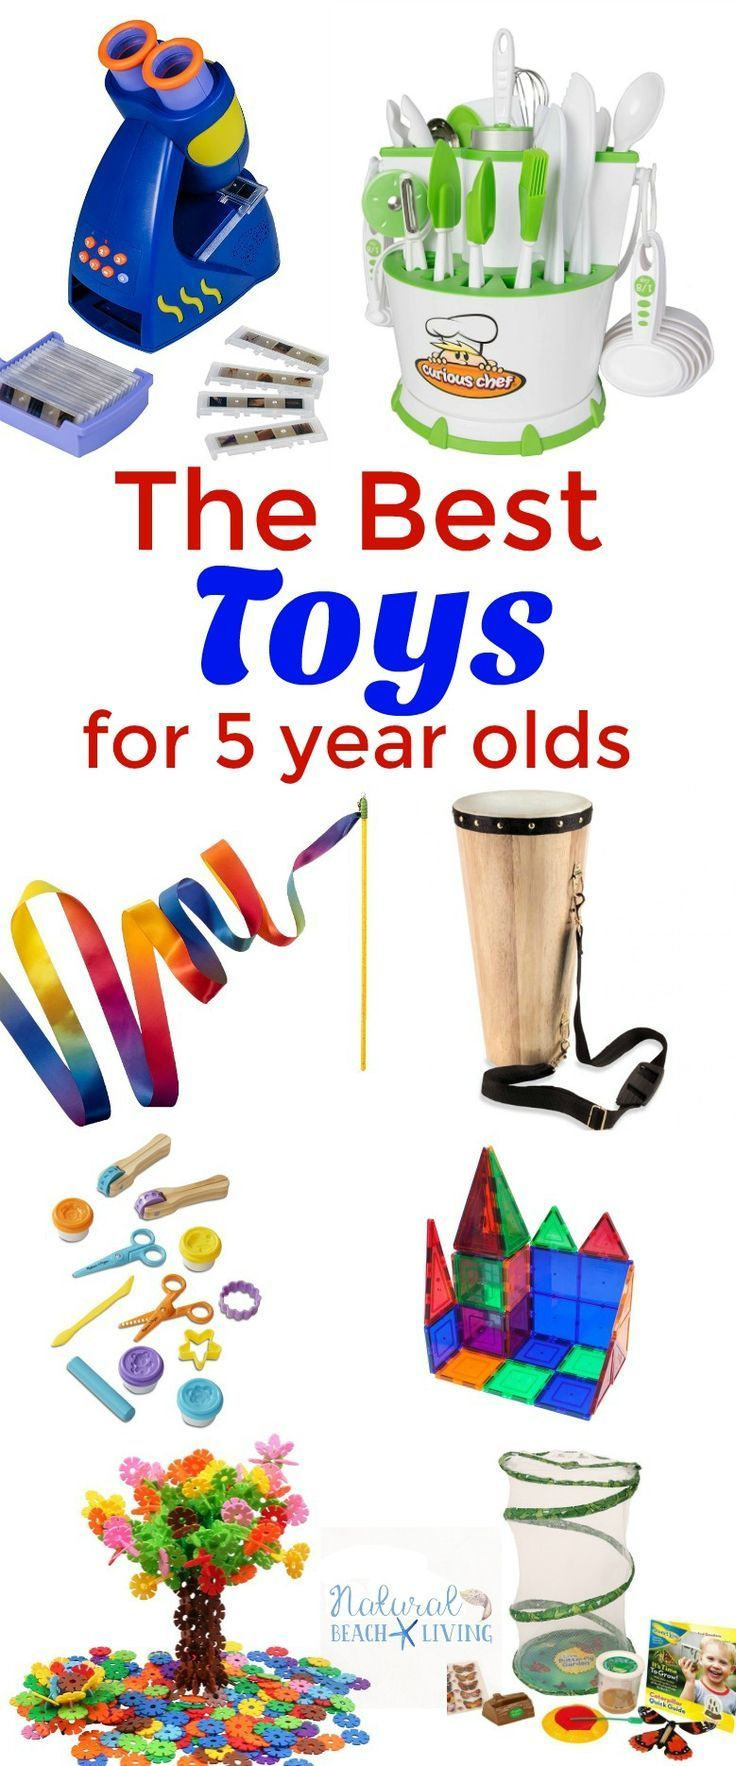 The Best Montessori Toys for 5 Year Olds, Educational Toys, Toys for Boys, Toys for Girls, The best toys for kids, Montessori Gifts for 5 Year Olds, Gift ideas, Amazon Toys, Natural Toys, Montessori Learning toys, Best Montessori Toys, Gift for 5 year old, Best toys for 5 year old boy, Best toys for 5 year old girl #Toys #giftideas #gifts #kindergarten #toysfor5yearold ##montessori